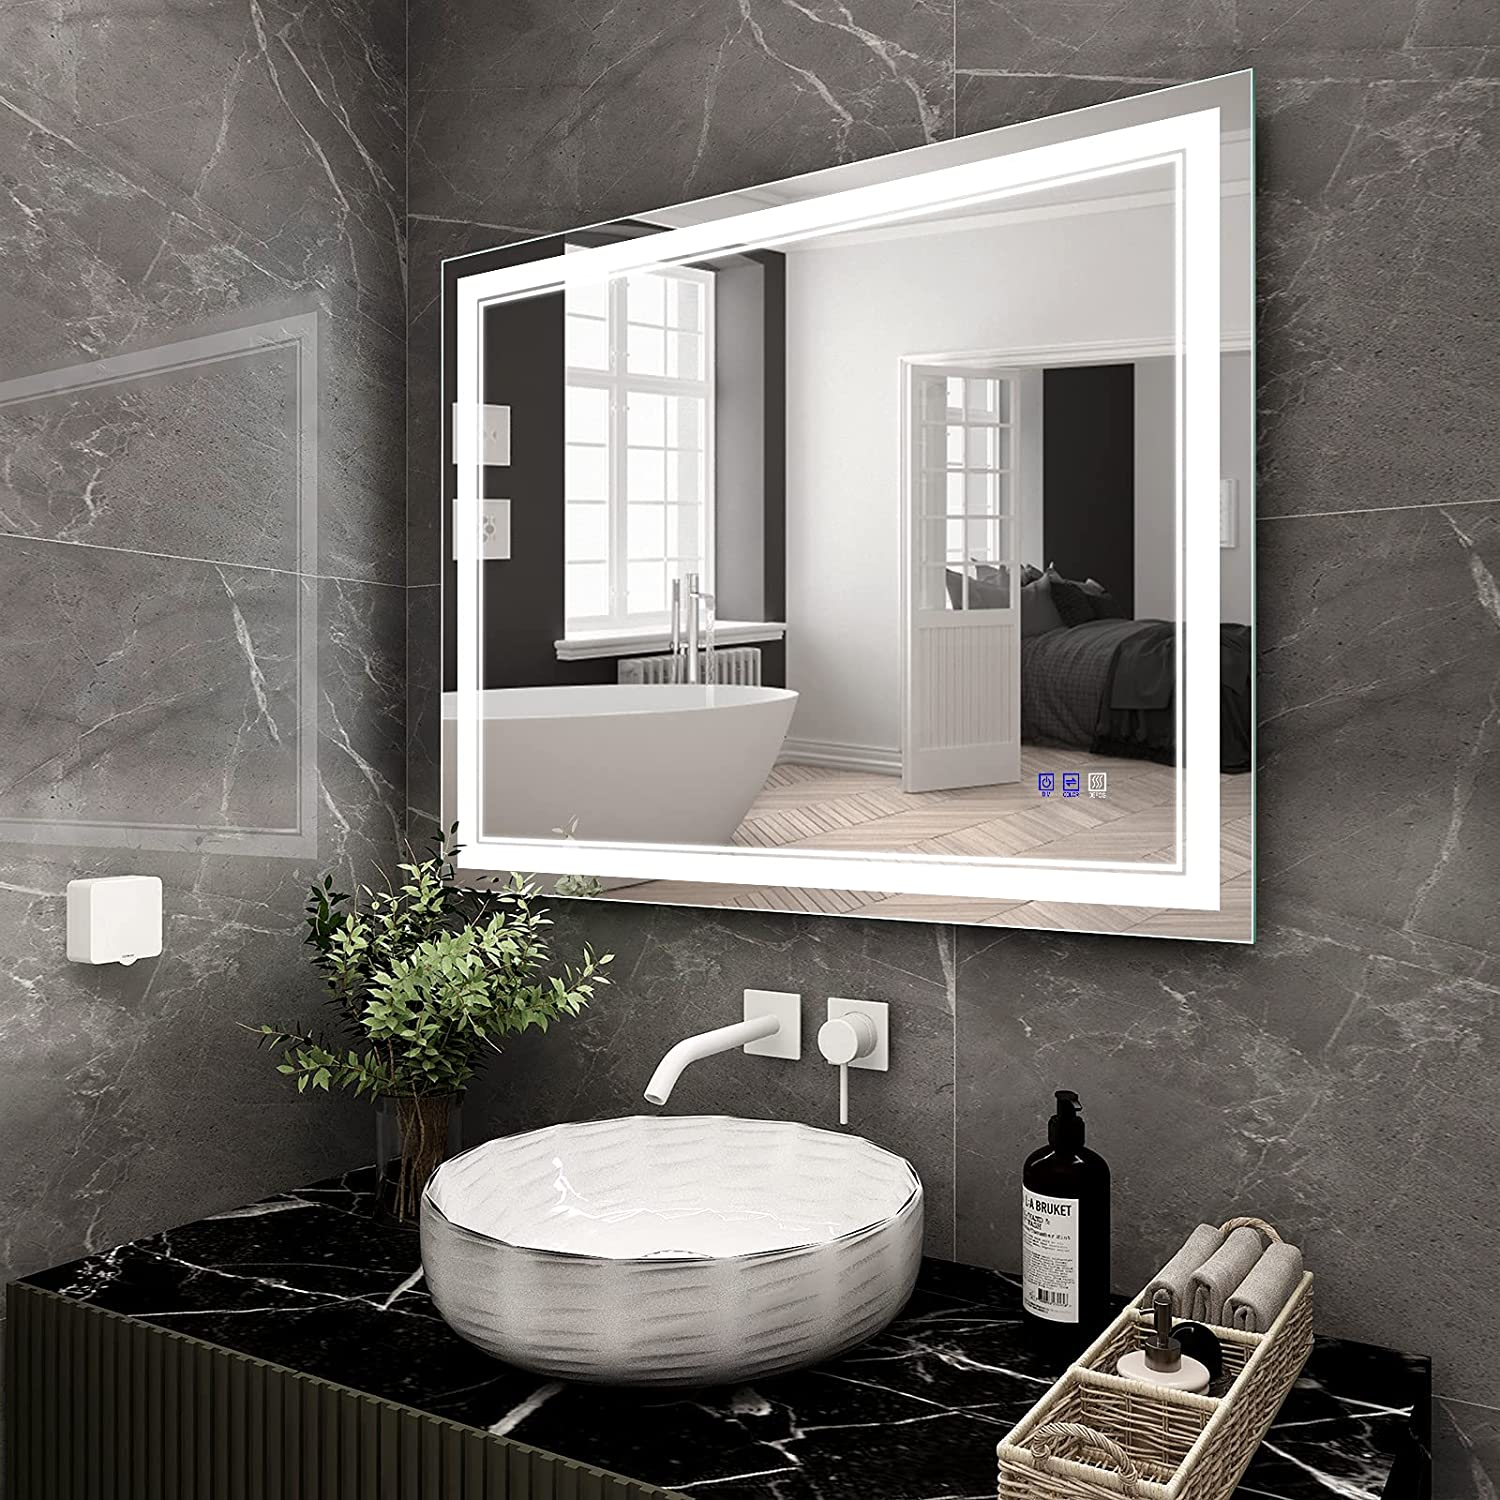 BATHTECHY 40x32 Inch Led Limited time cheap sale lighted Mirror Wall Ranking TOP12 L bathroom Mounted